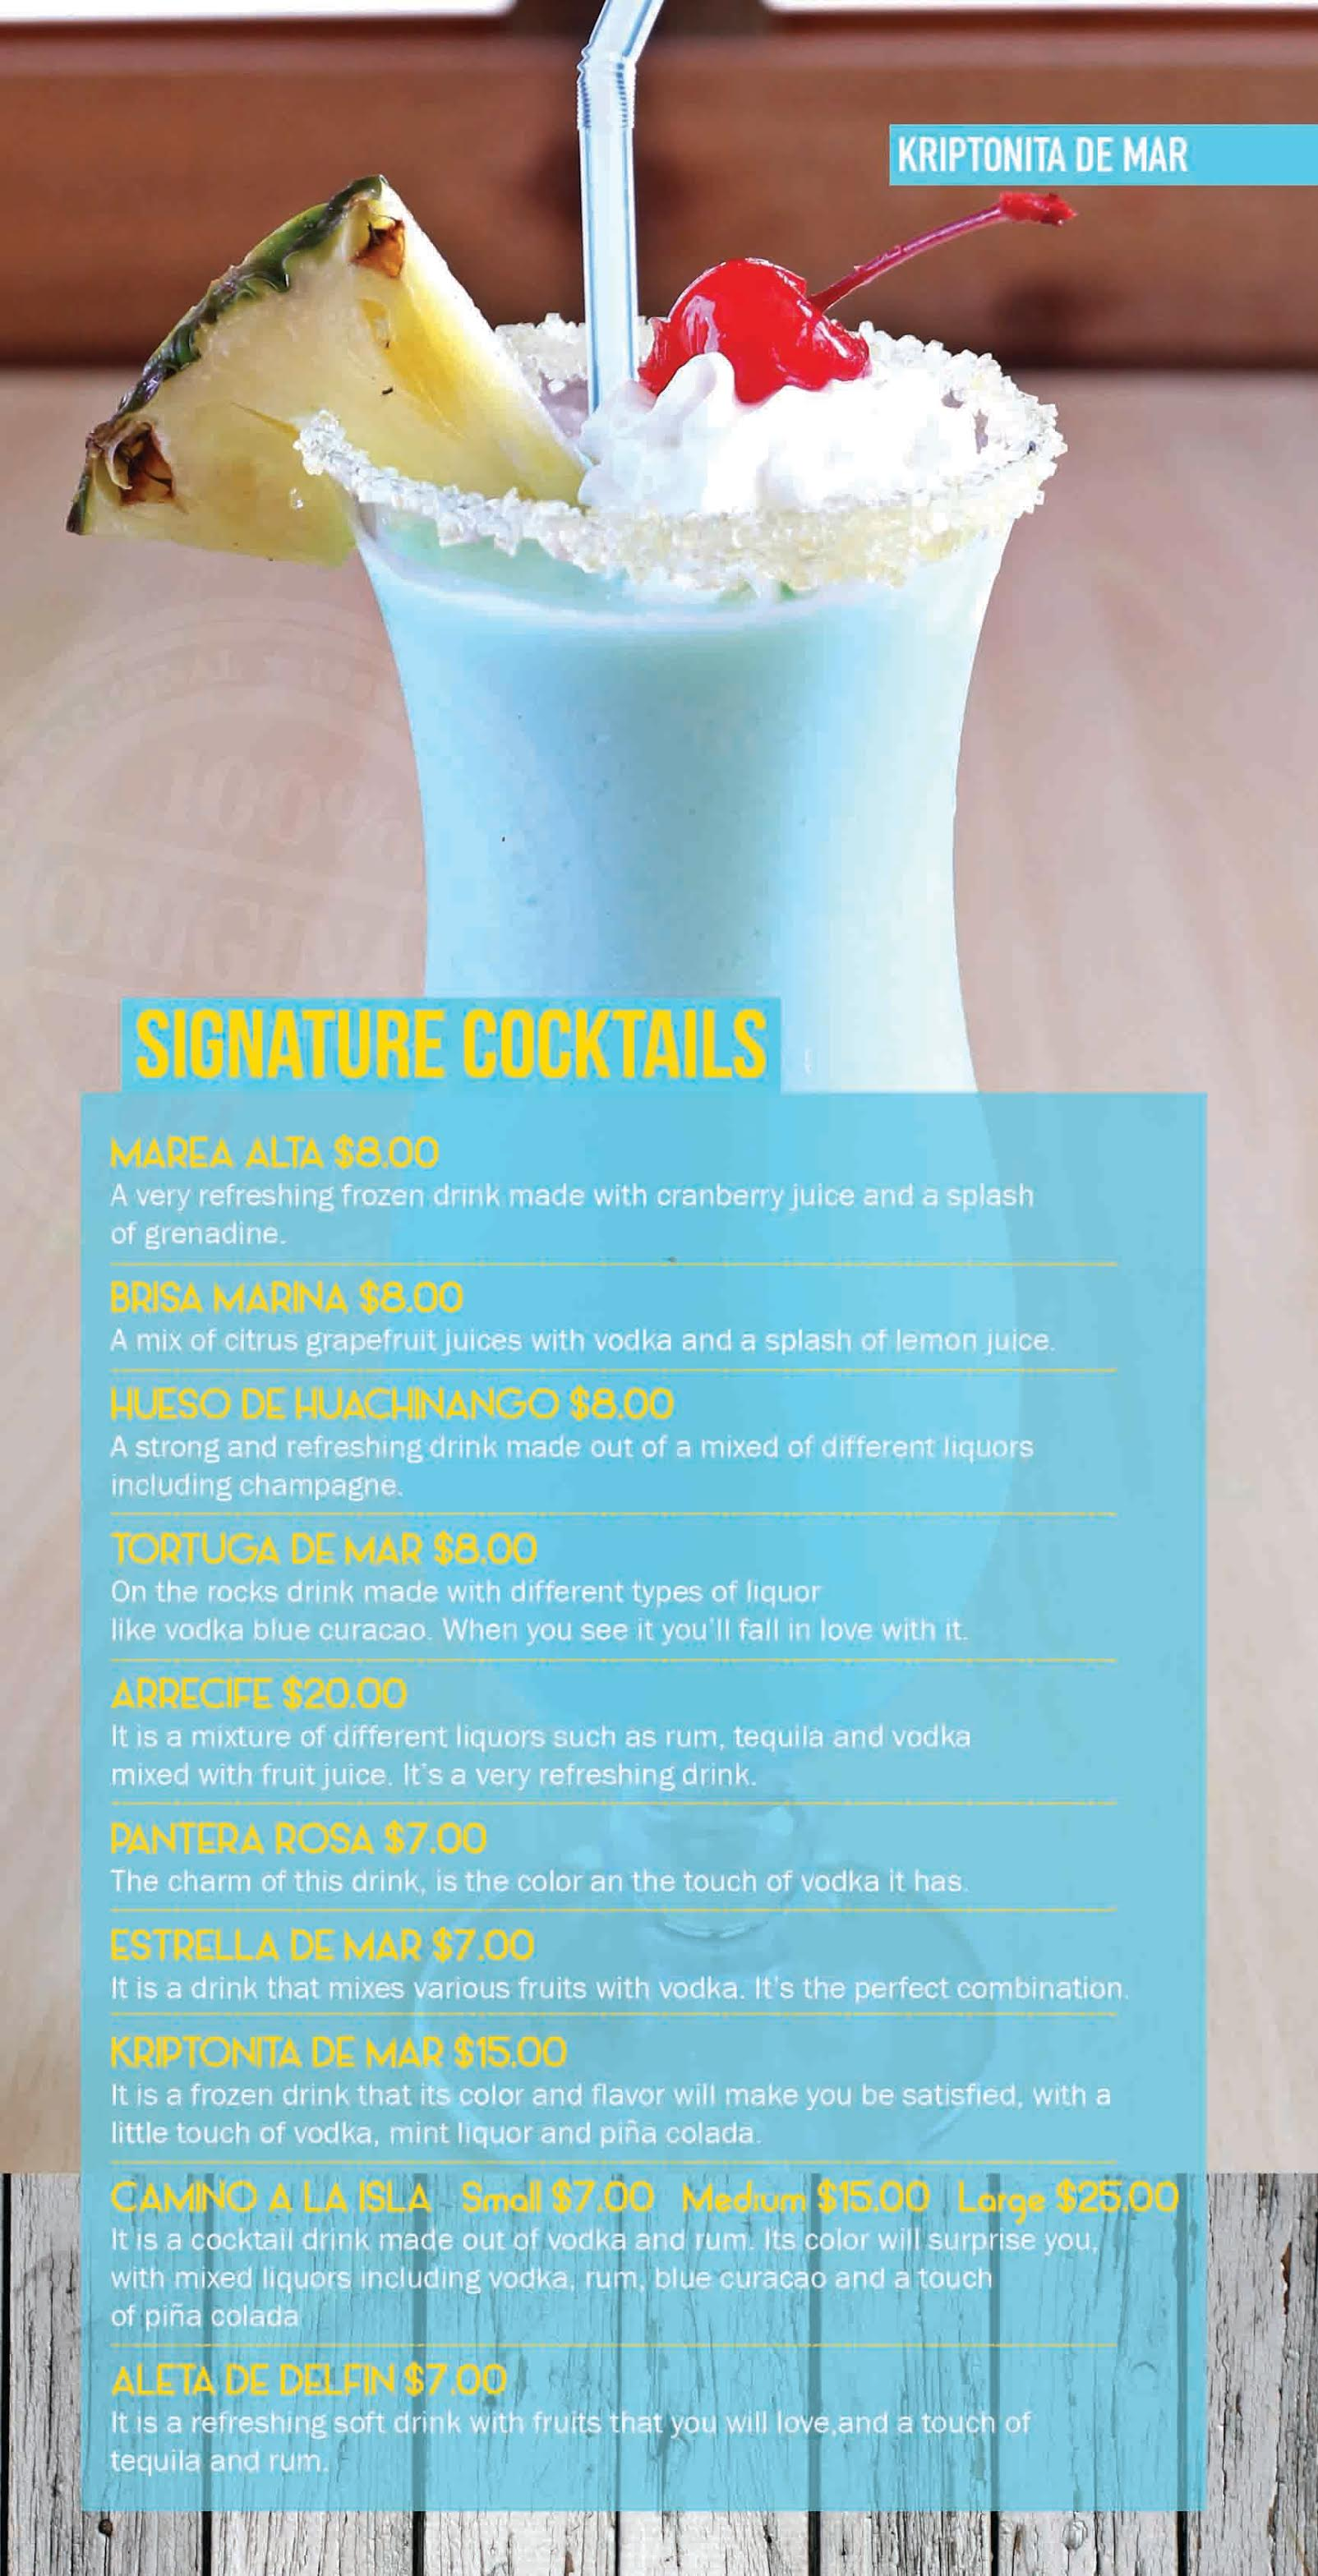 signaturecocktails